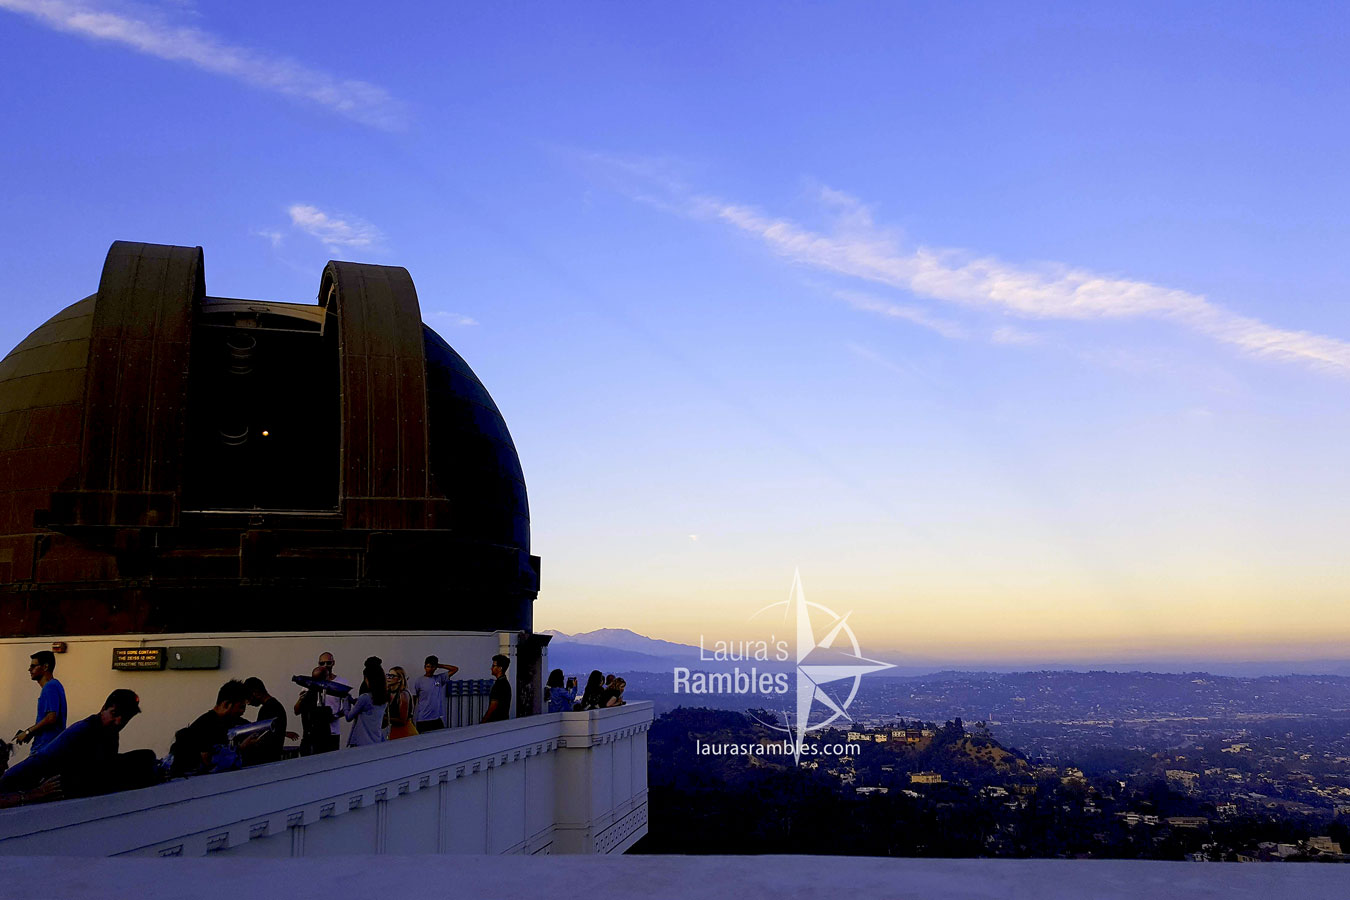 Los Angeles, CA - Griffith Observatory at dusk